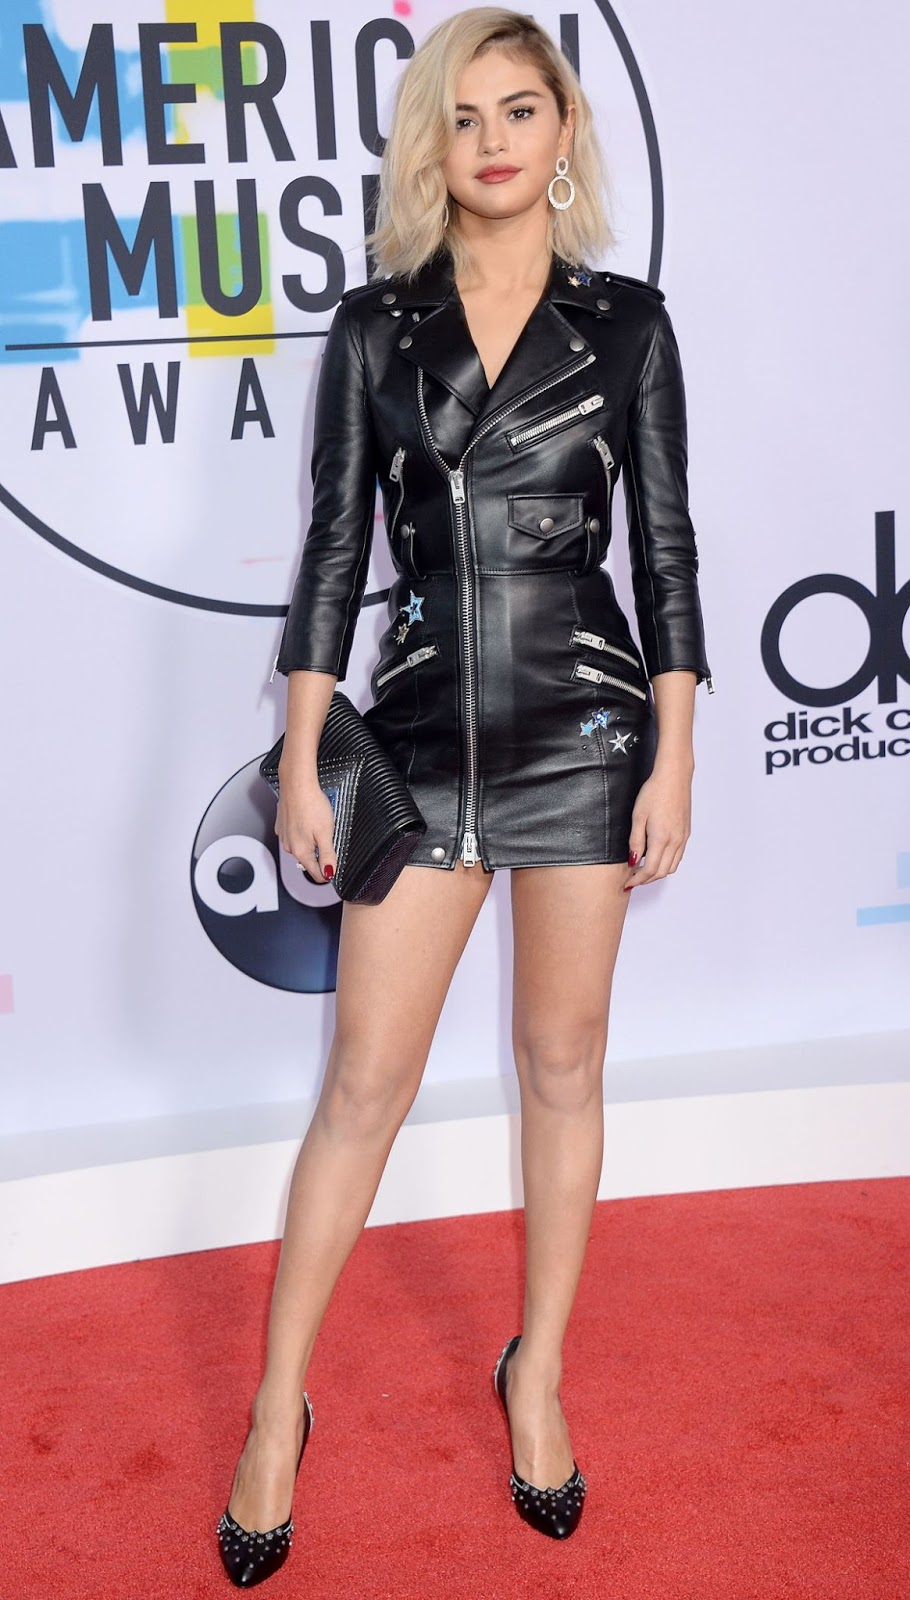 Photos of Selena Gomez at American Music Awards 2017 at Microsoft Theater in Los Angeles